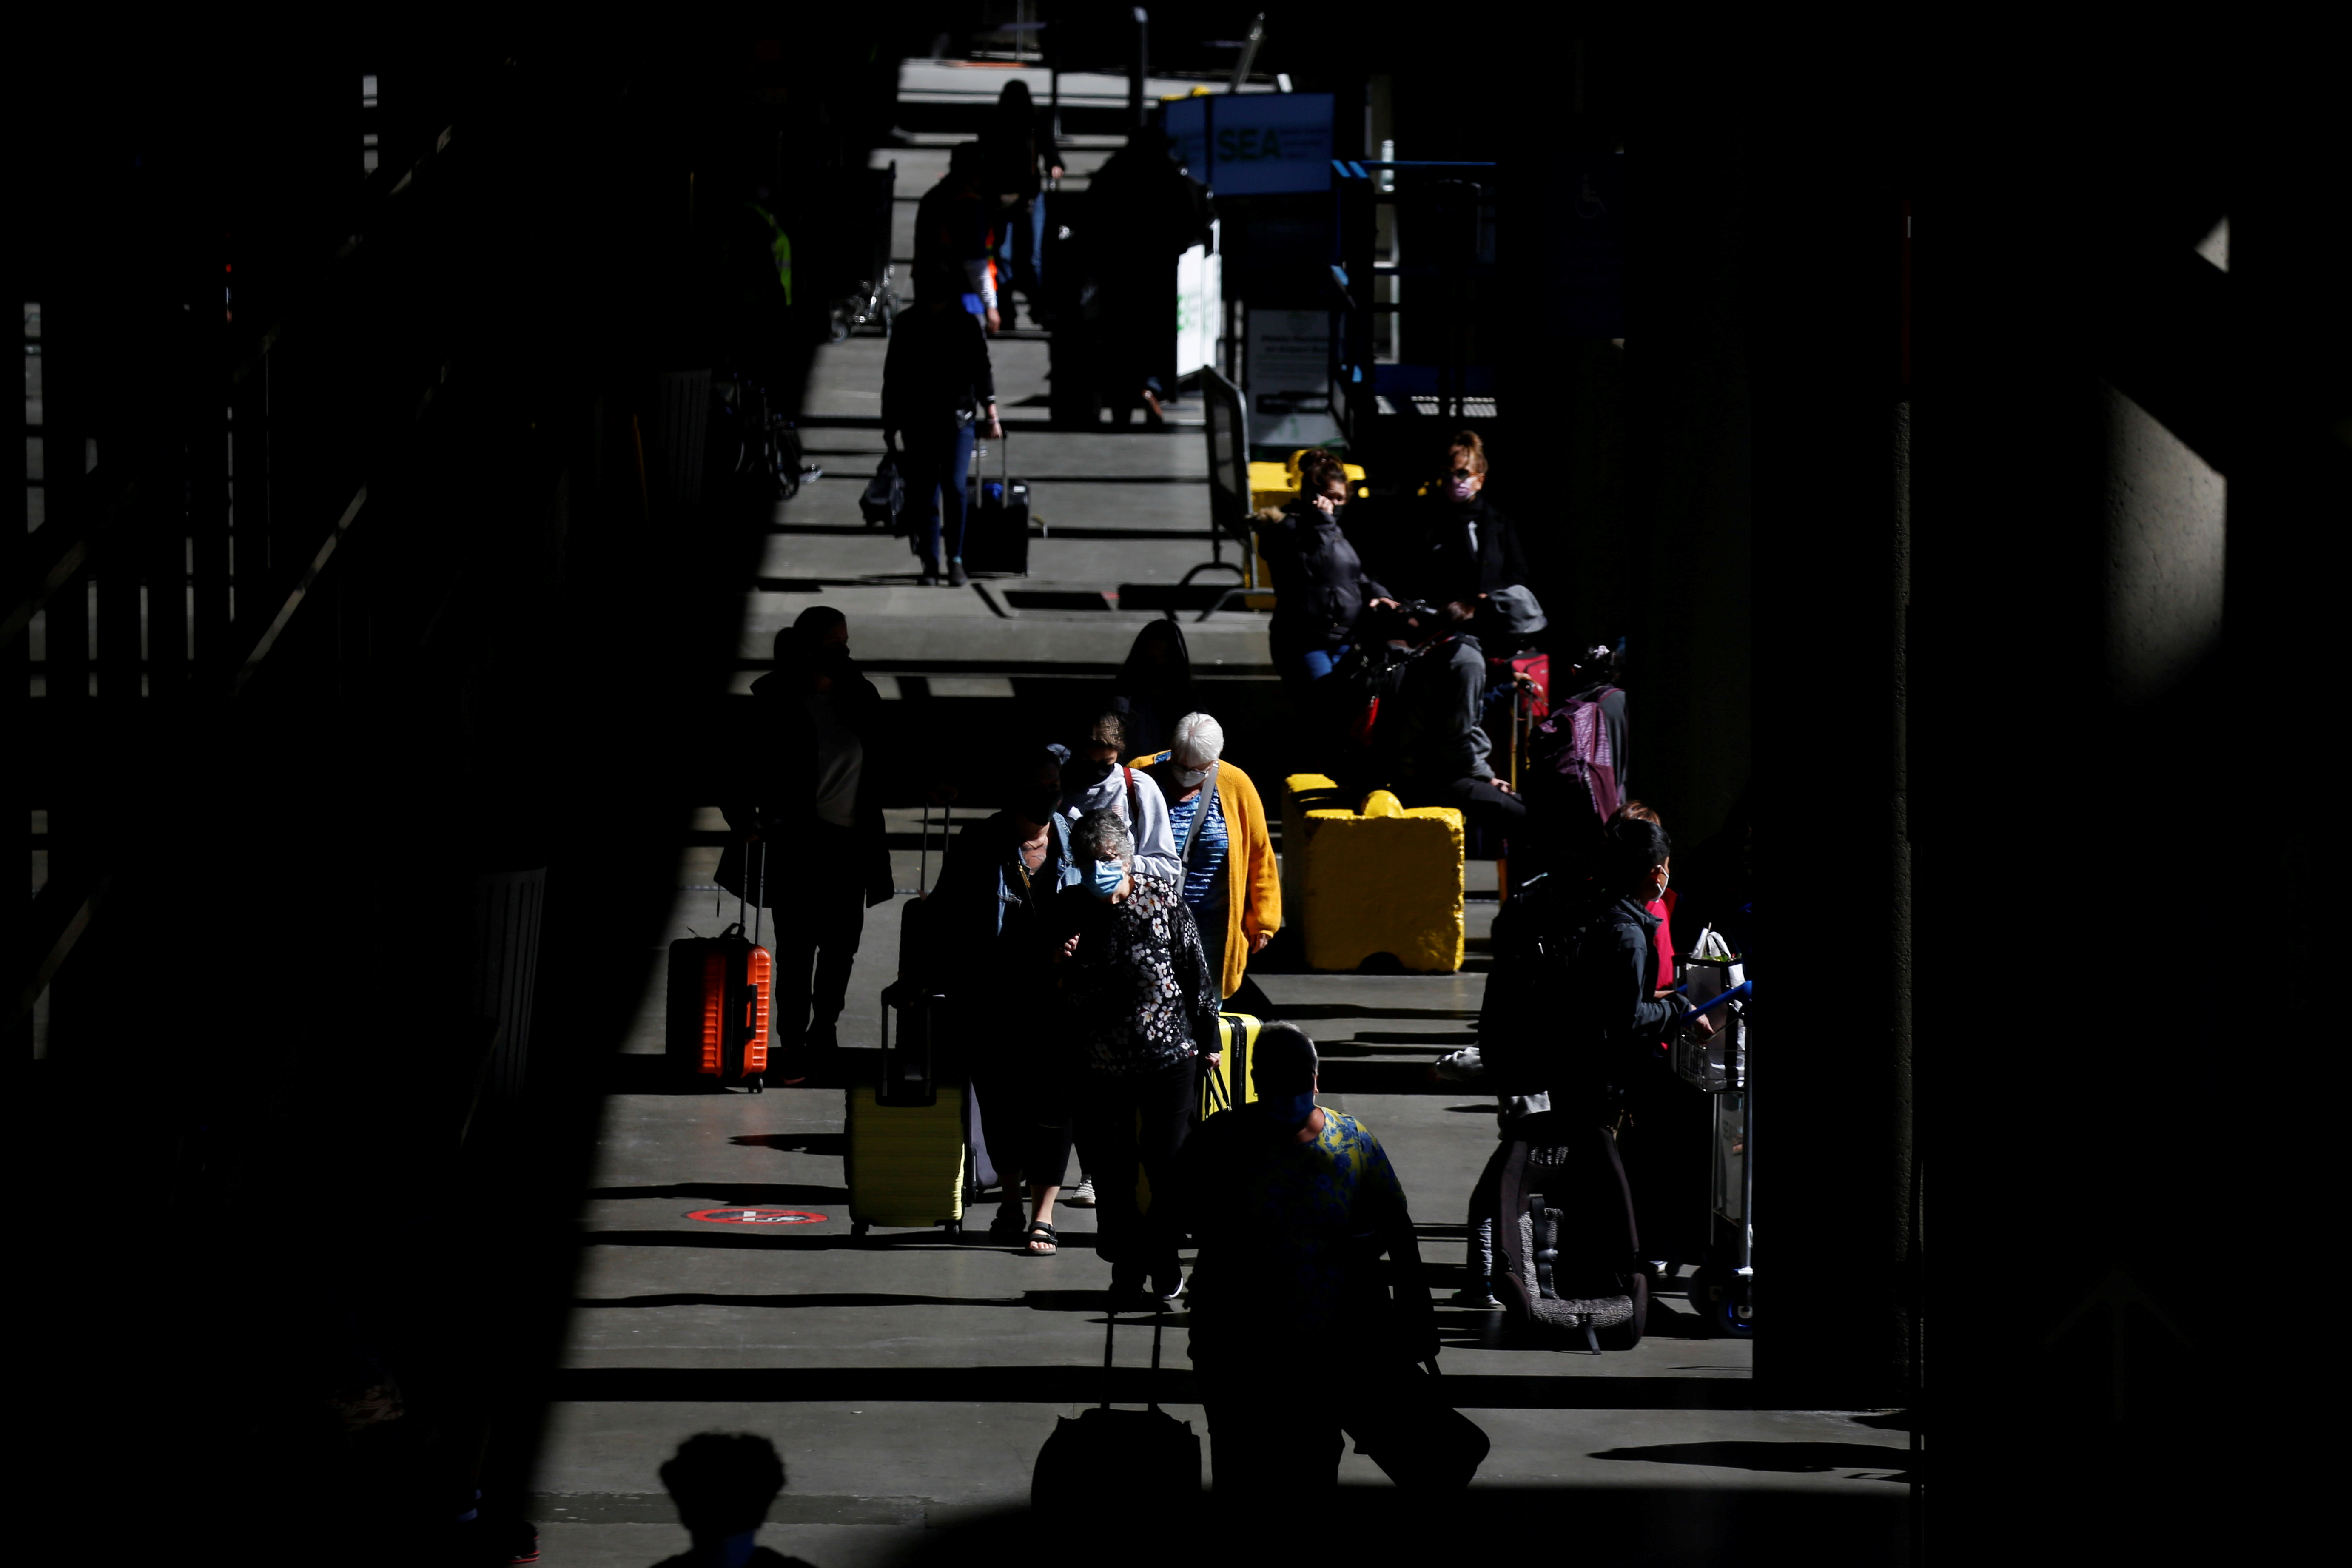 Travelers walk through a pick-up area in the arrivals section at Seattle-Tacoma International Airport in SeaTac, Washington, U.S. April 12, 2021.  REUTERS/Lindsey Wasson